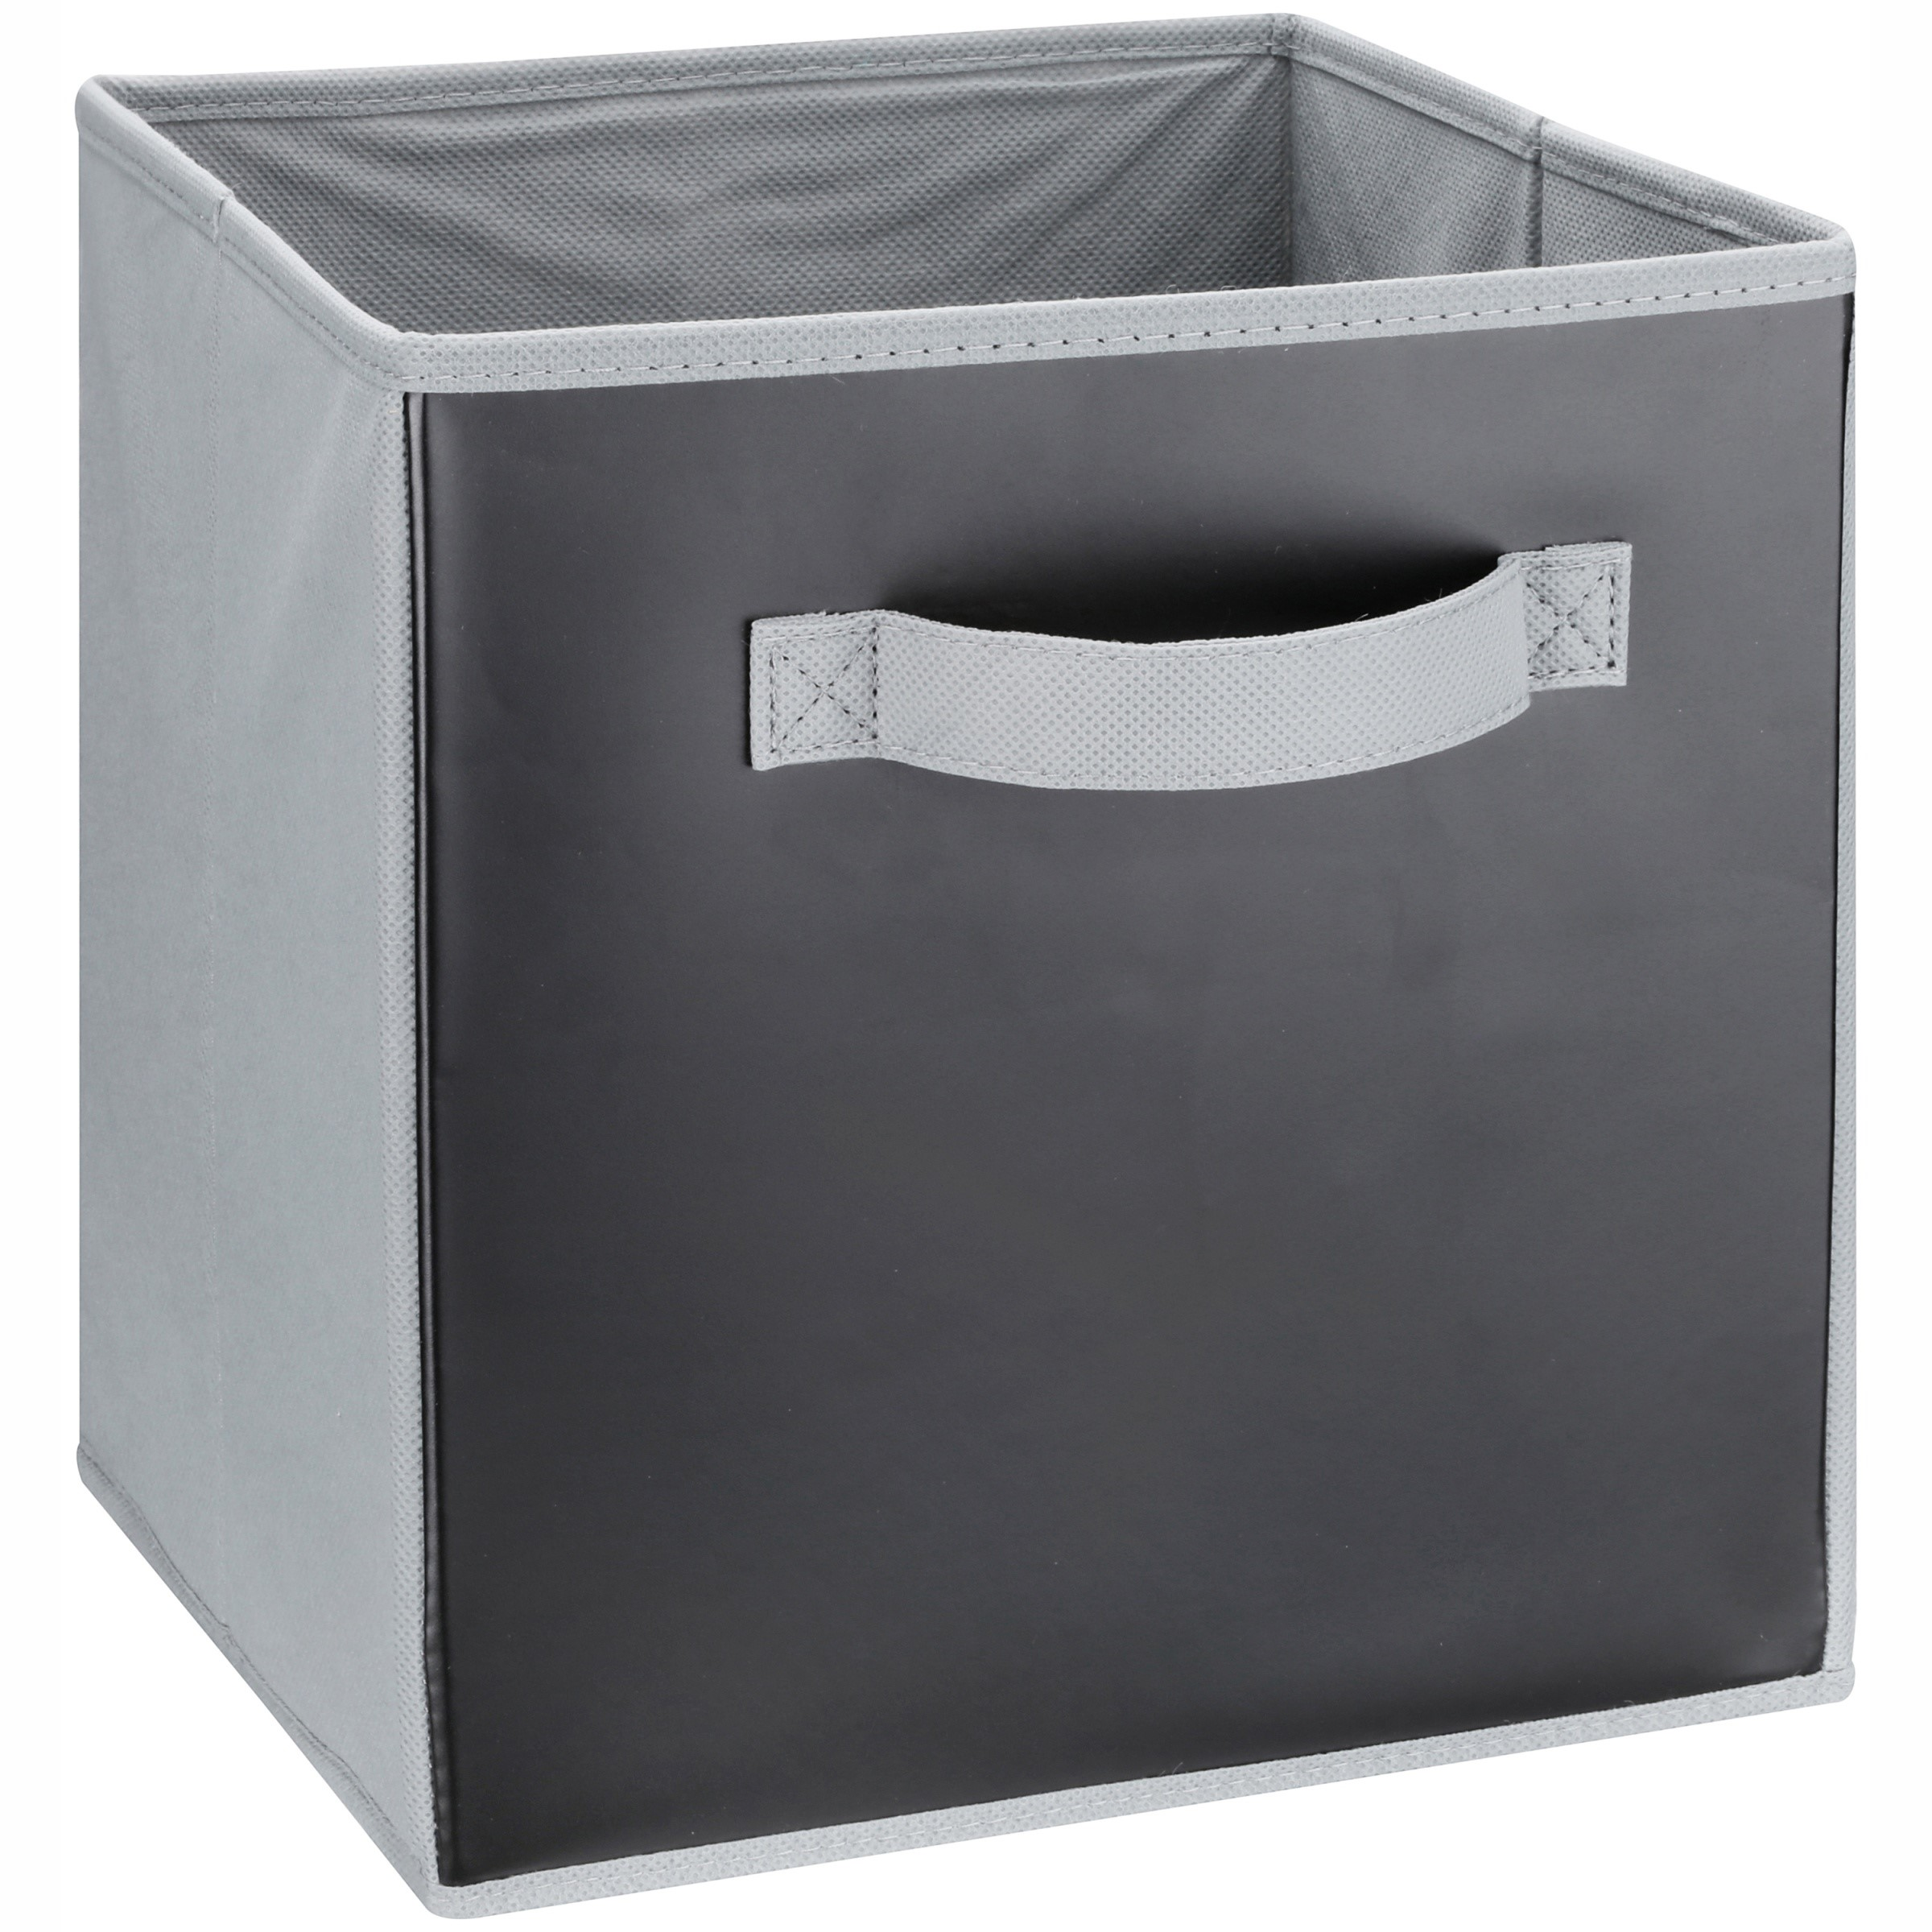 ClosetMaid Cubeicals Gray Chalkboard Fabric Drawer